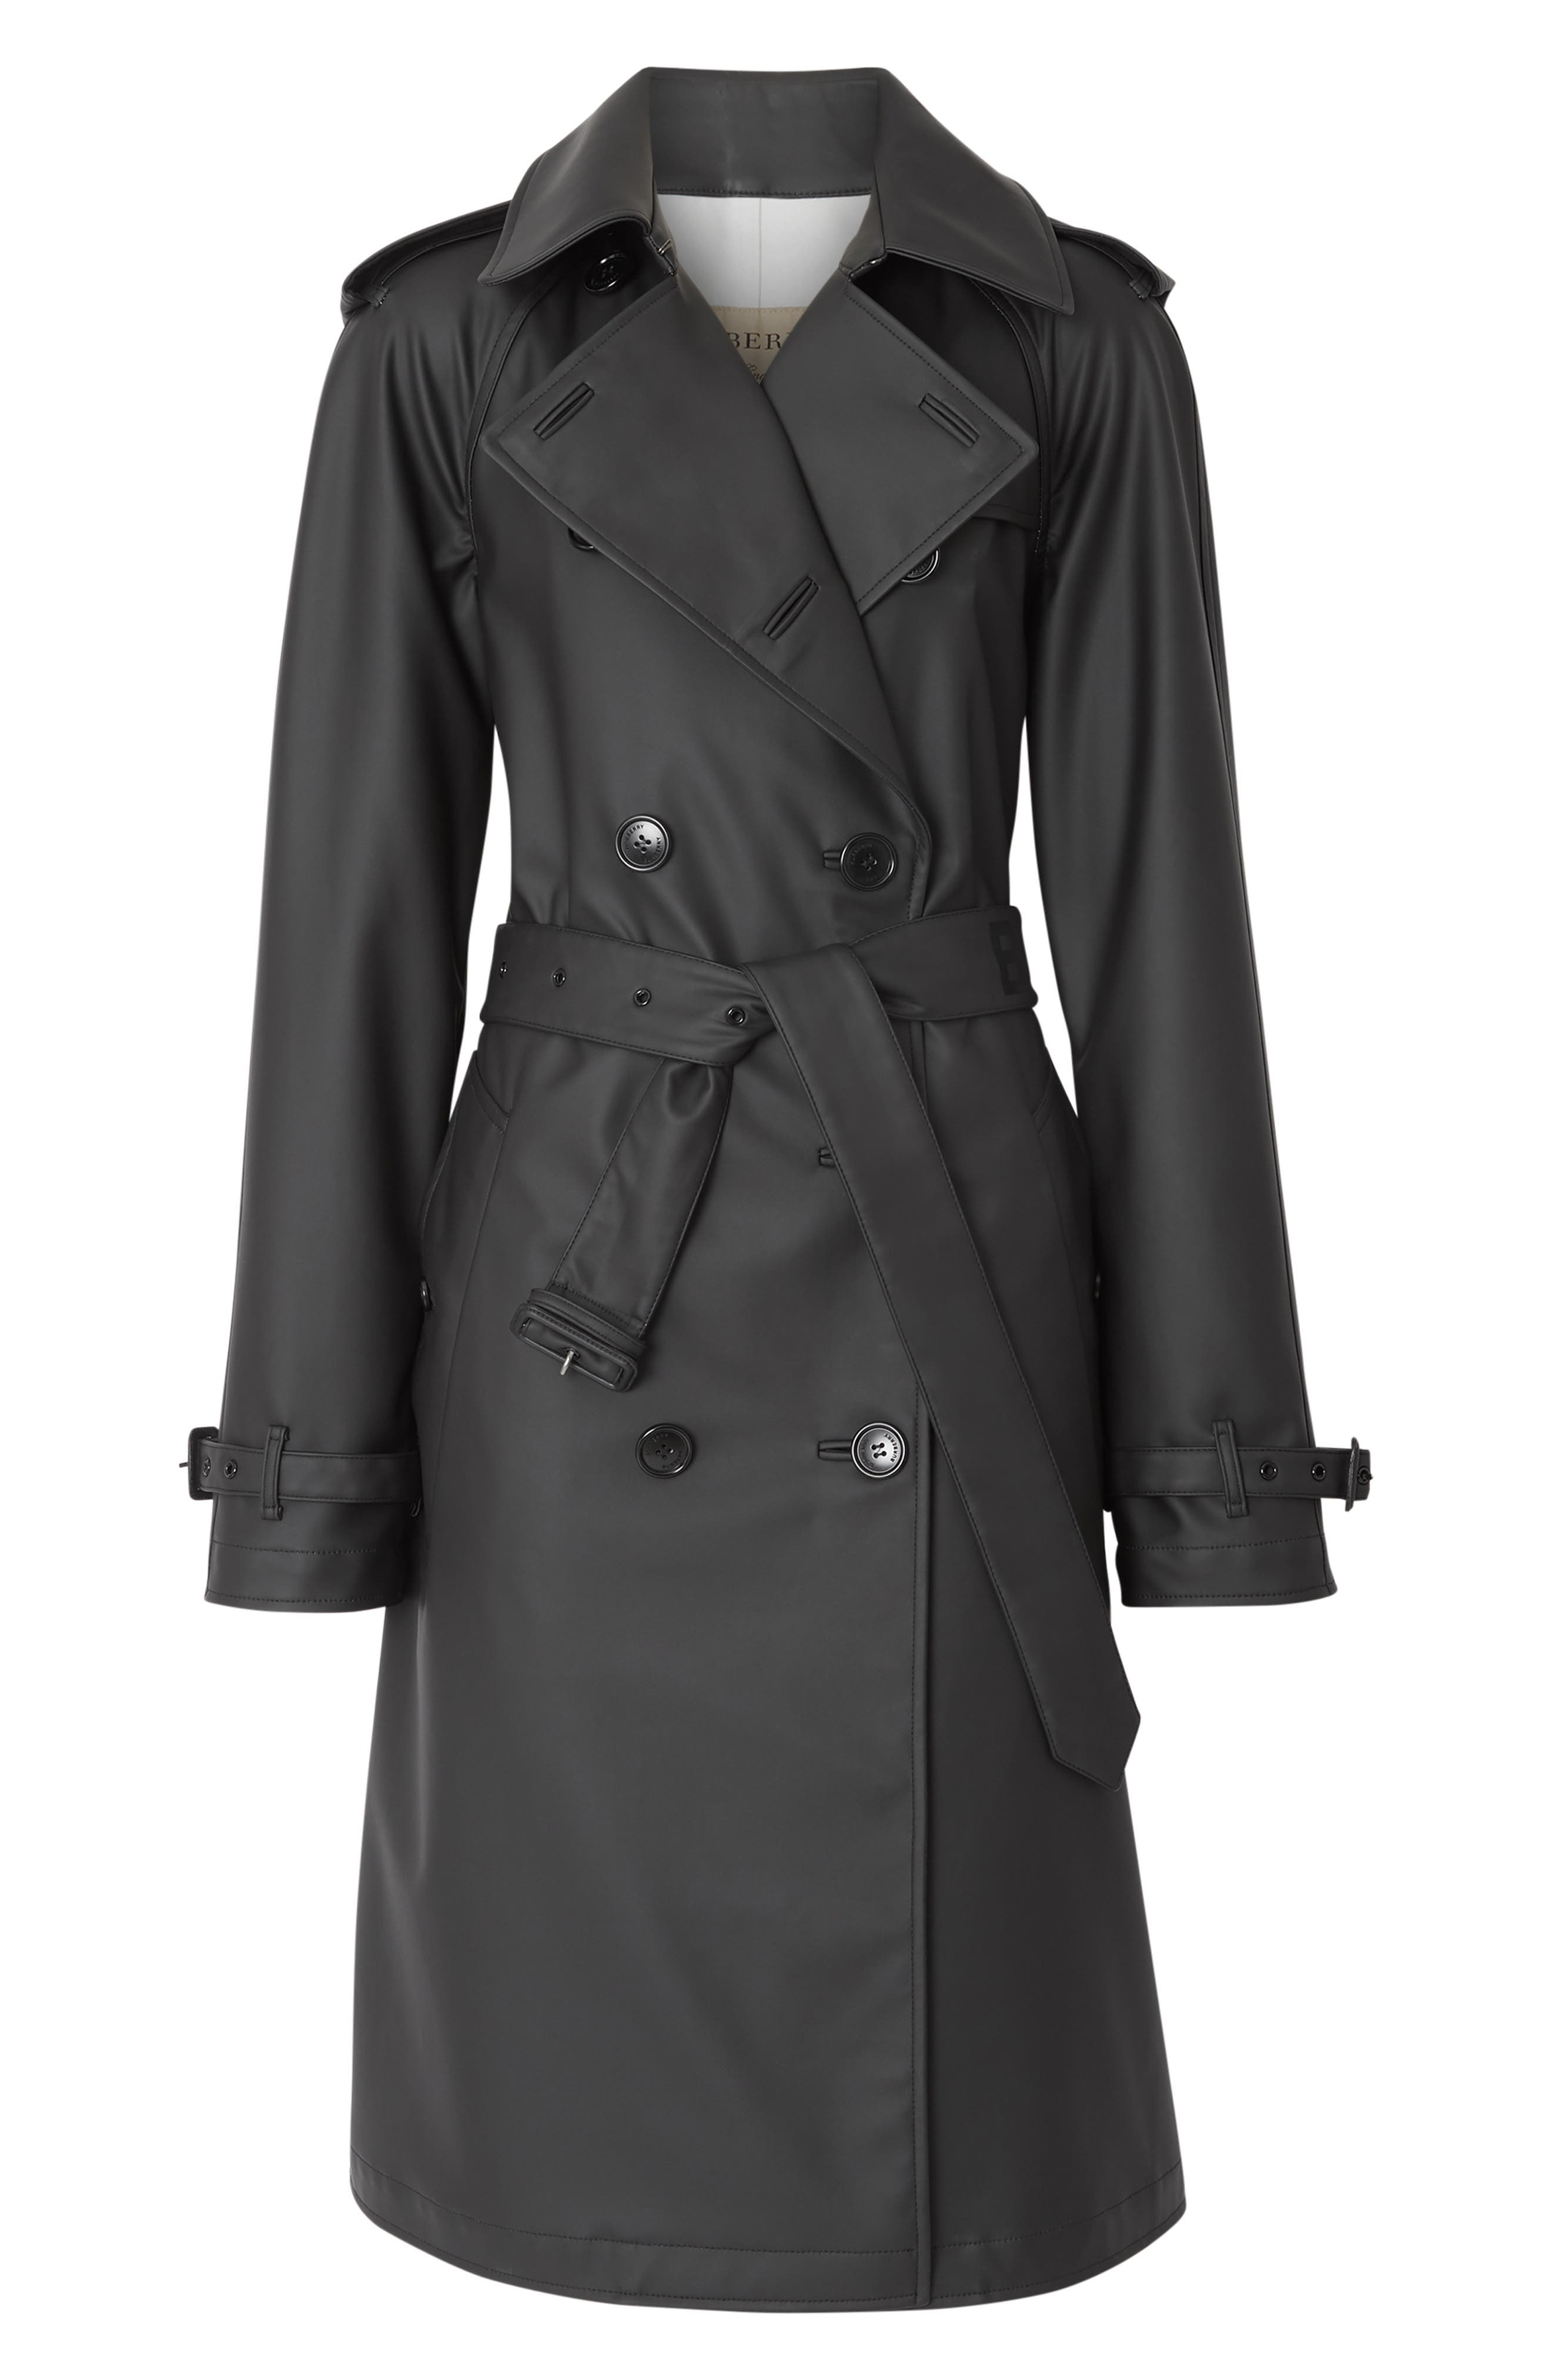 BURBERRY, Curradine Waterproof Rubberized Trench Coat, Alternate thumbnail 2, color, BLACK / WHITE